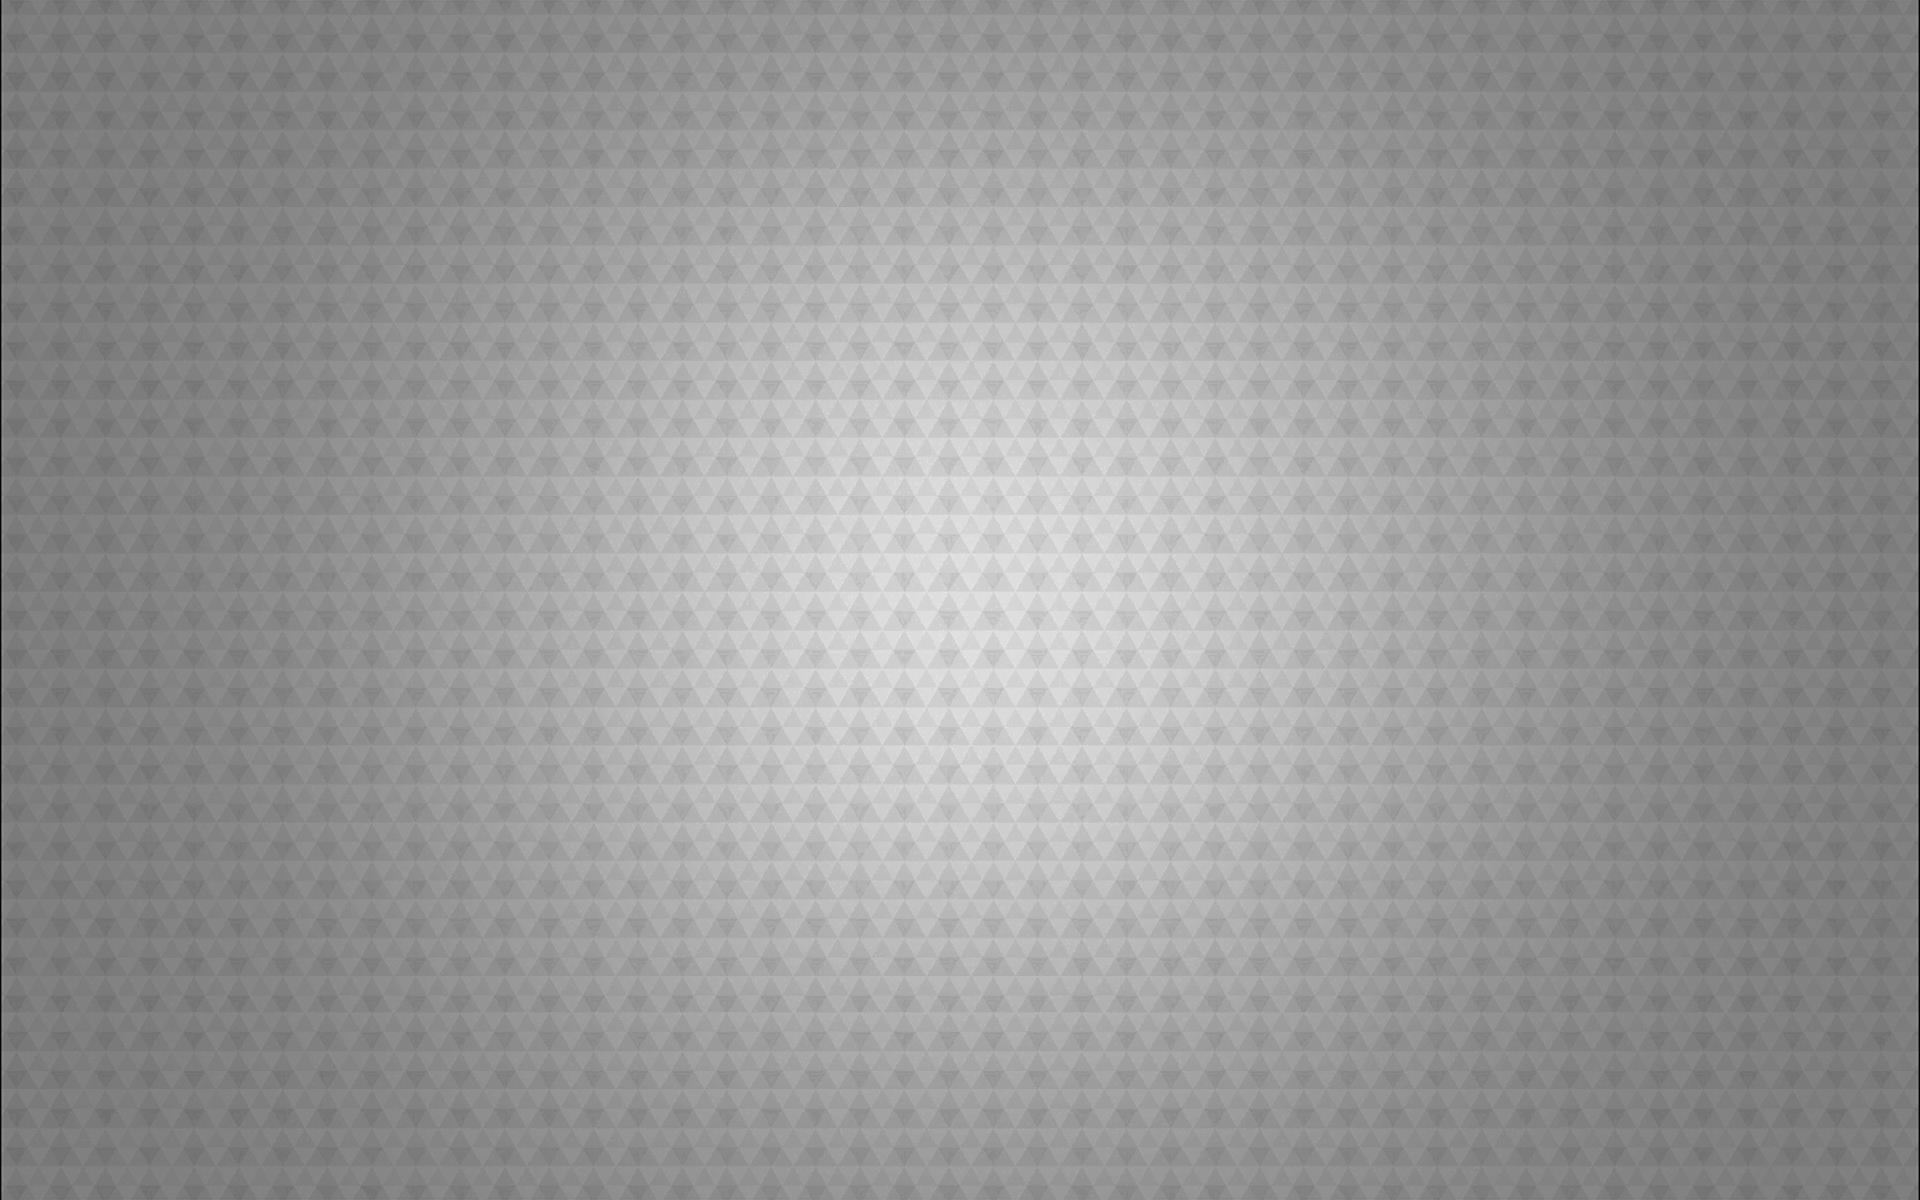 textures patterns, templates, download photo, pattern background textures,